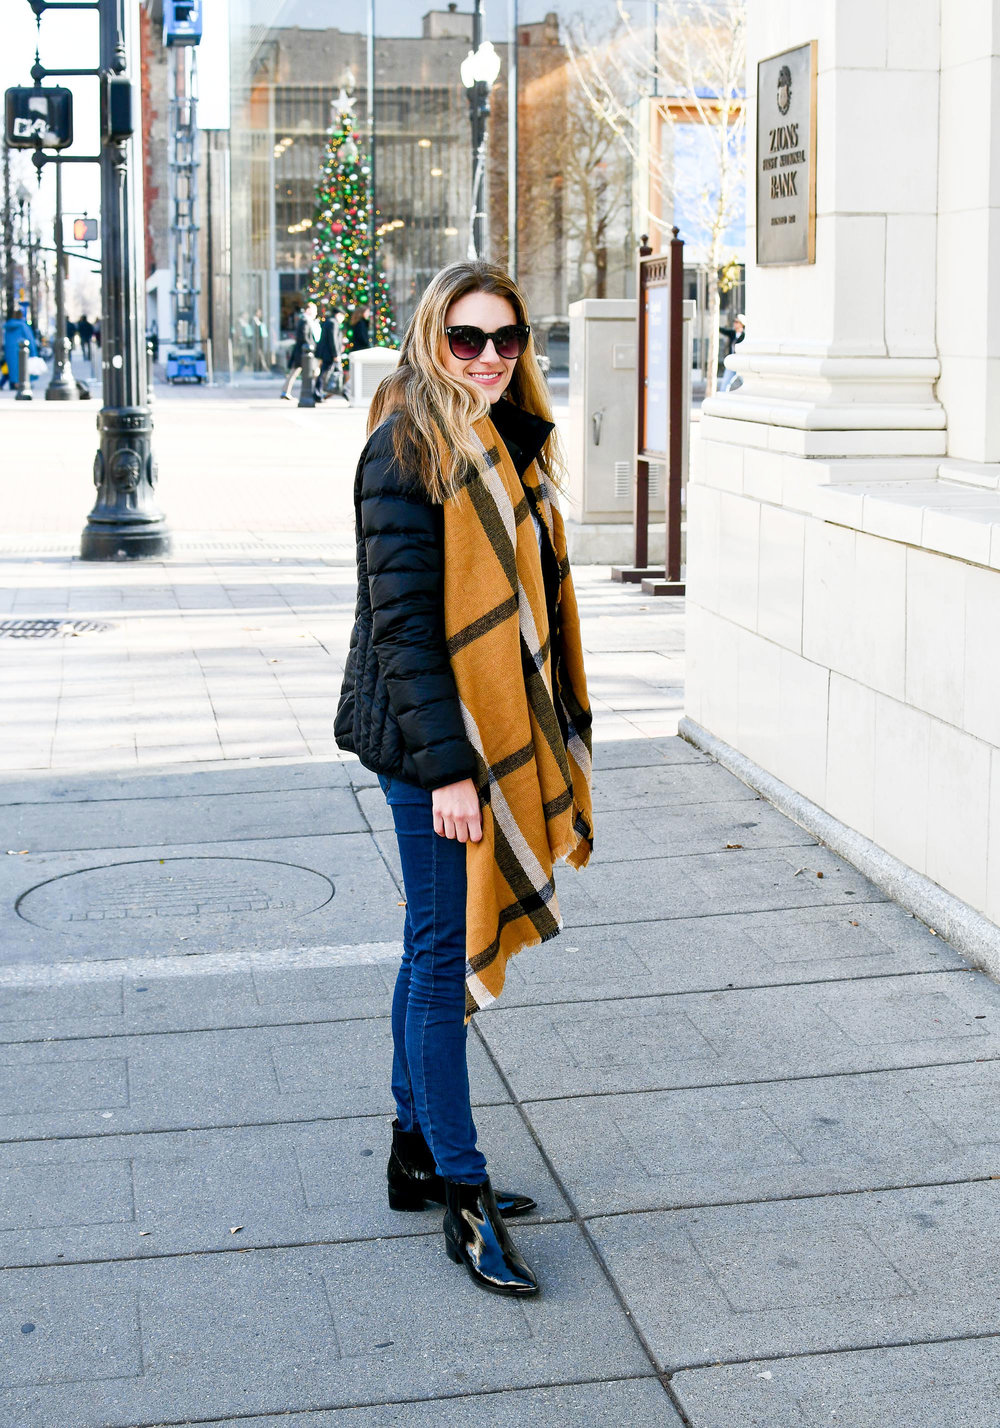 winter-outfit-camel-blanket-scarf.jpg